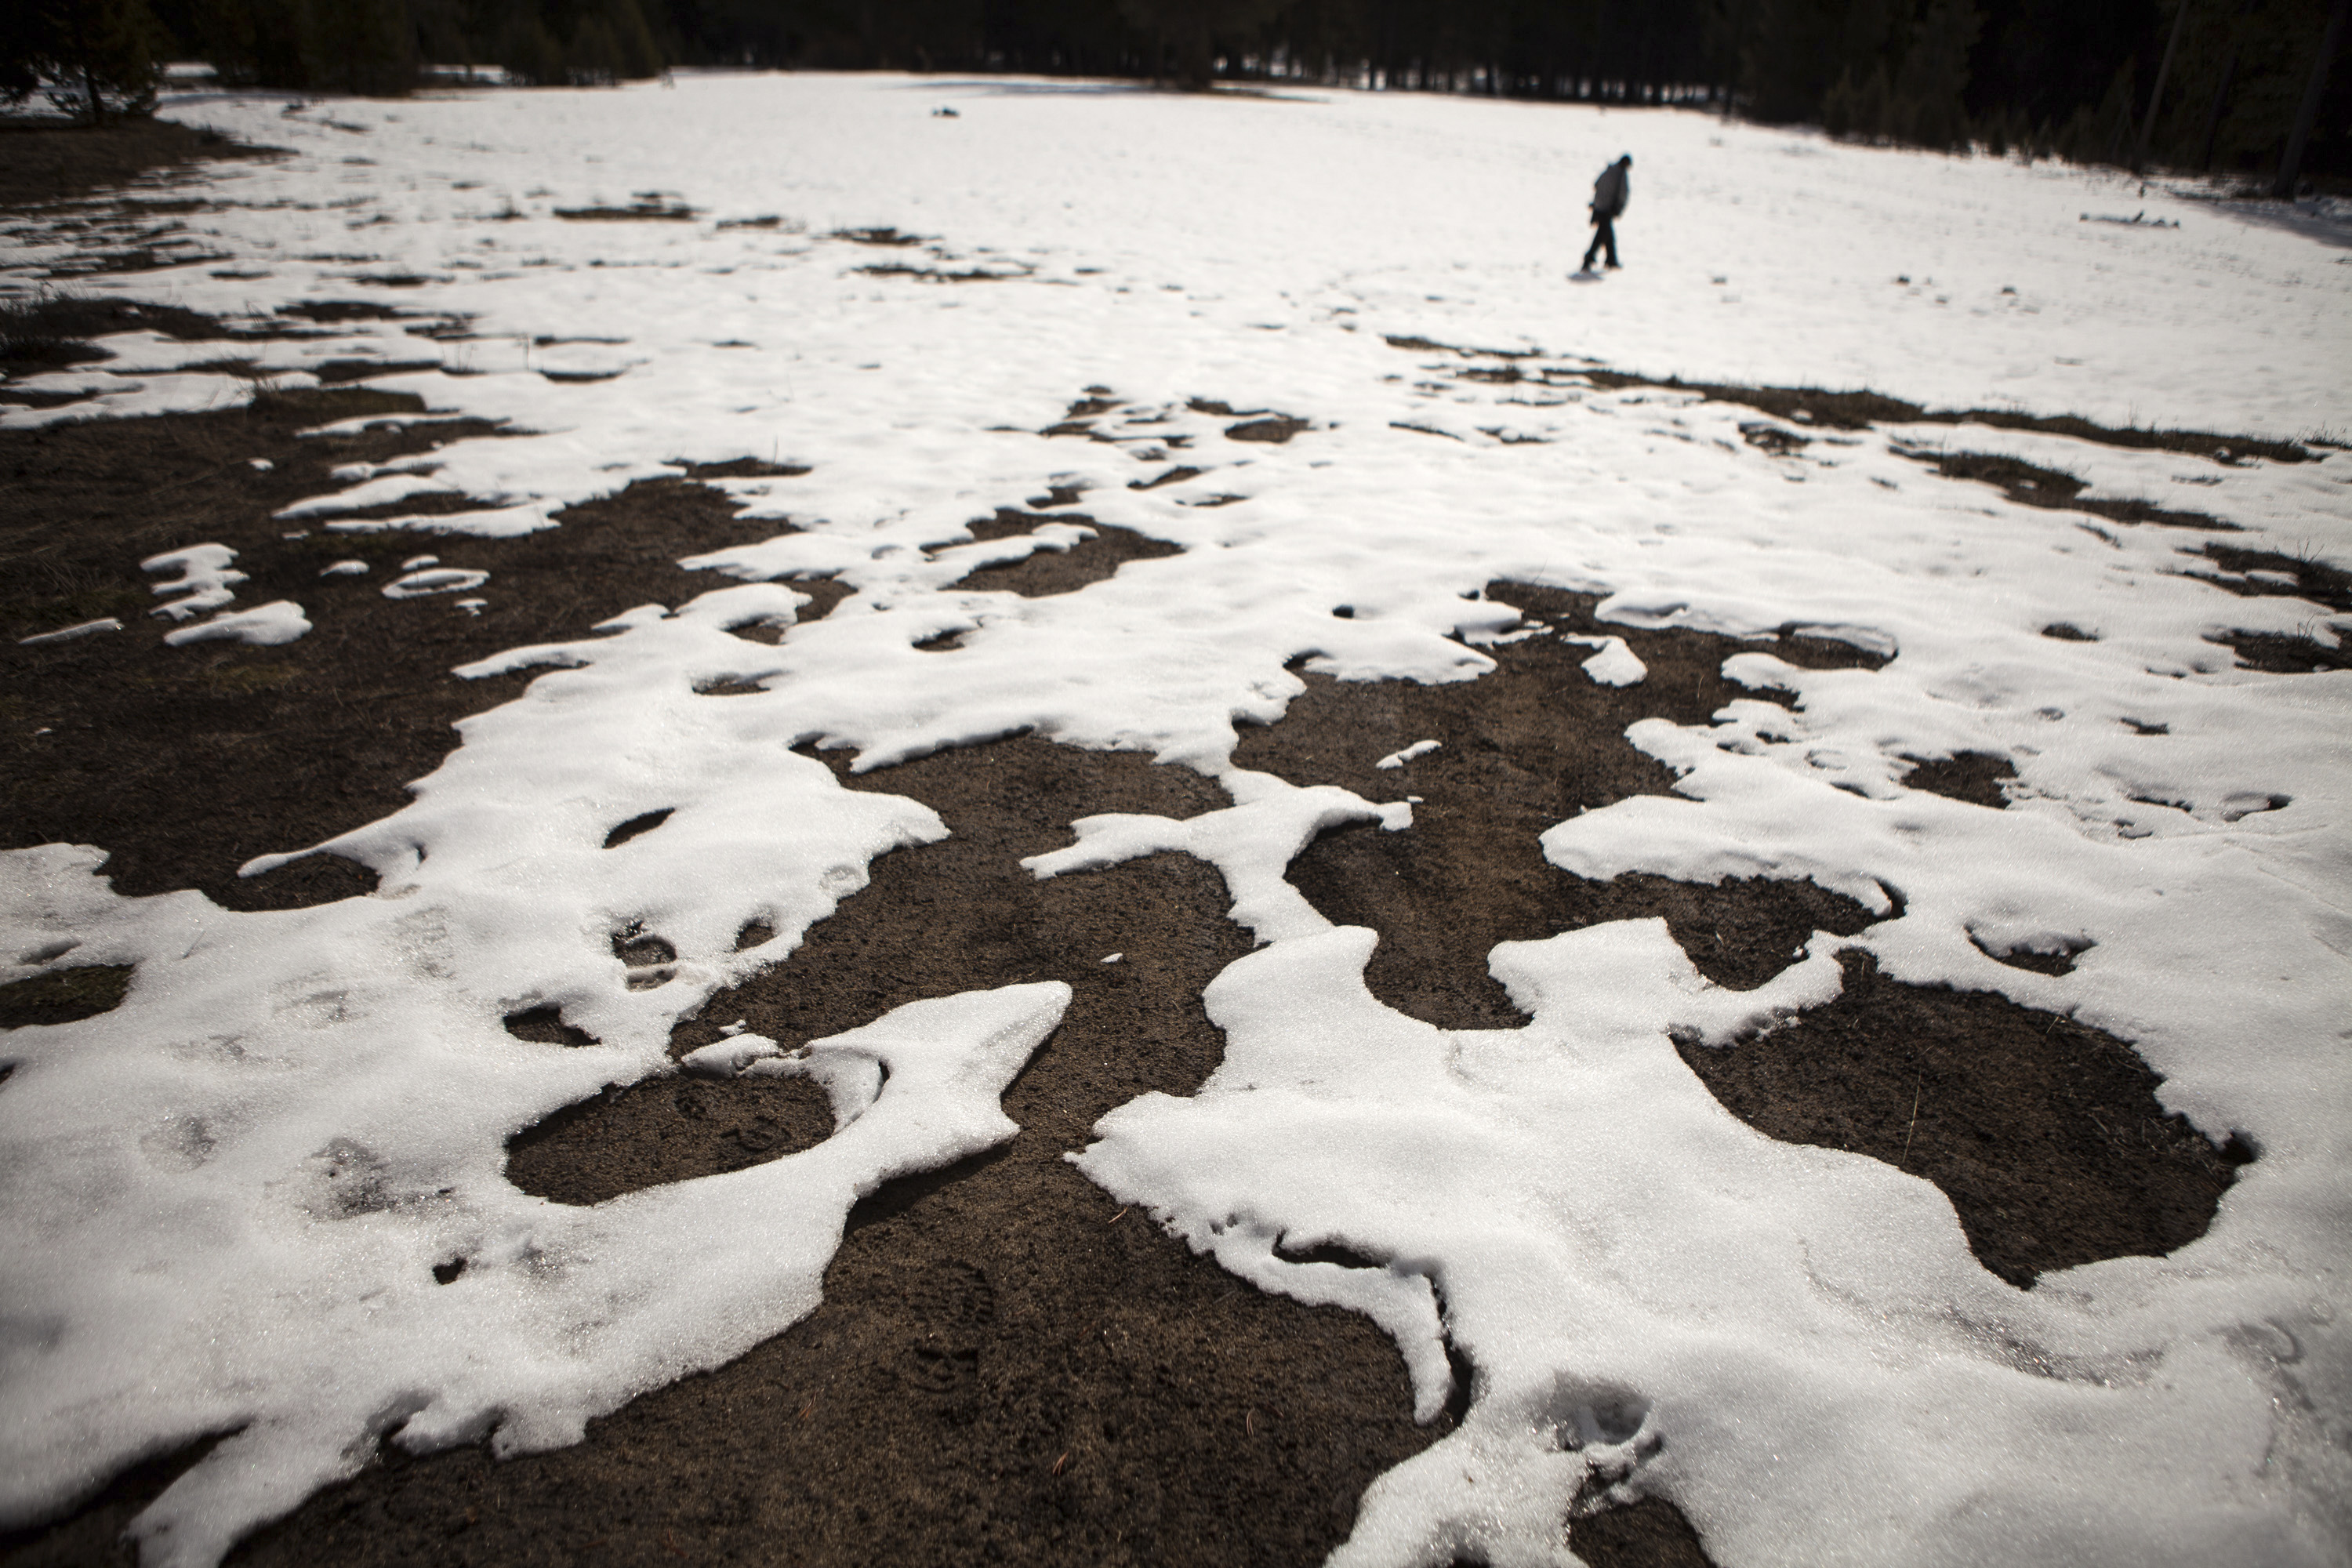 Patchy snow covers the meadow where the California Department of Water Resources measured the snowpack on January 29, 2015. Photo by Max Whittaker/Reuters